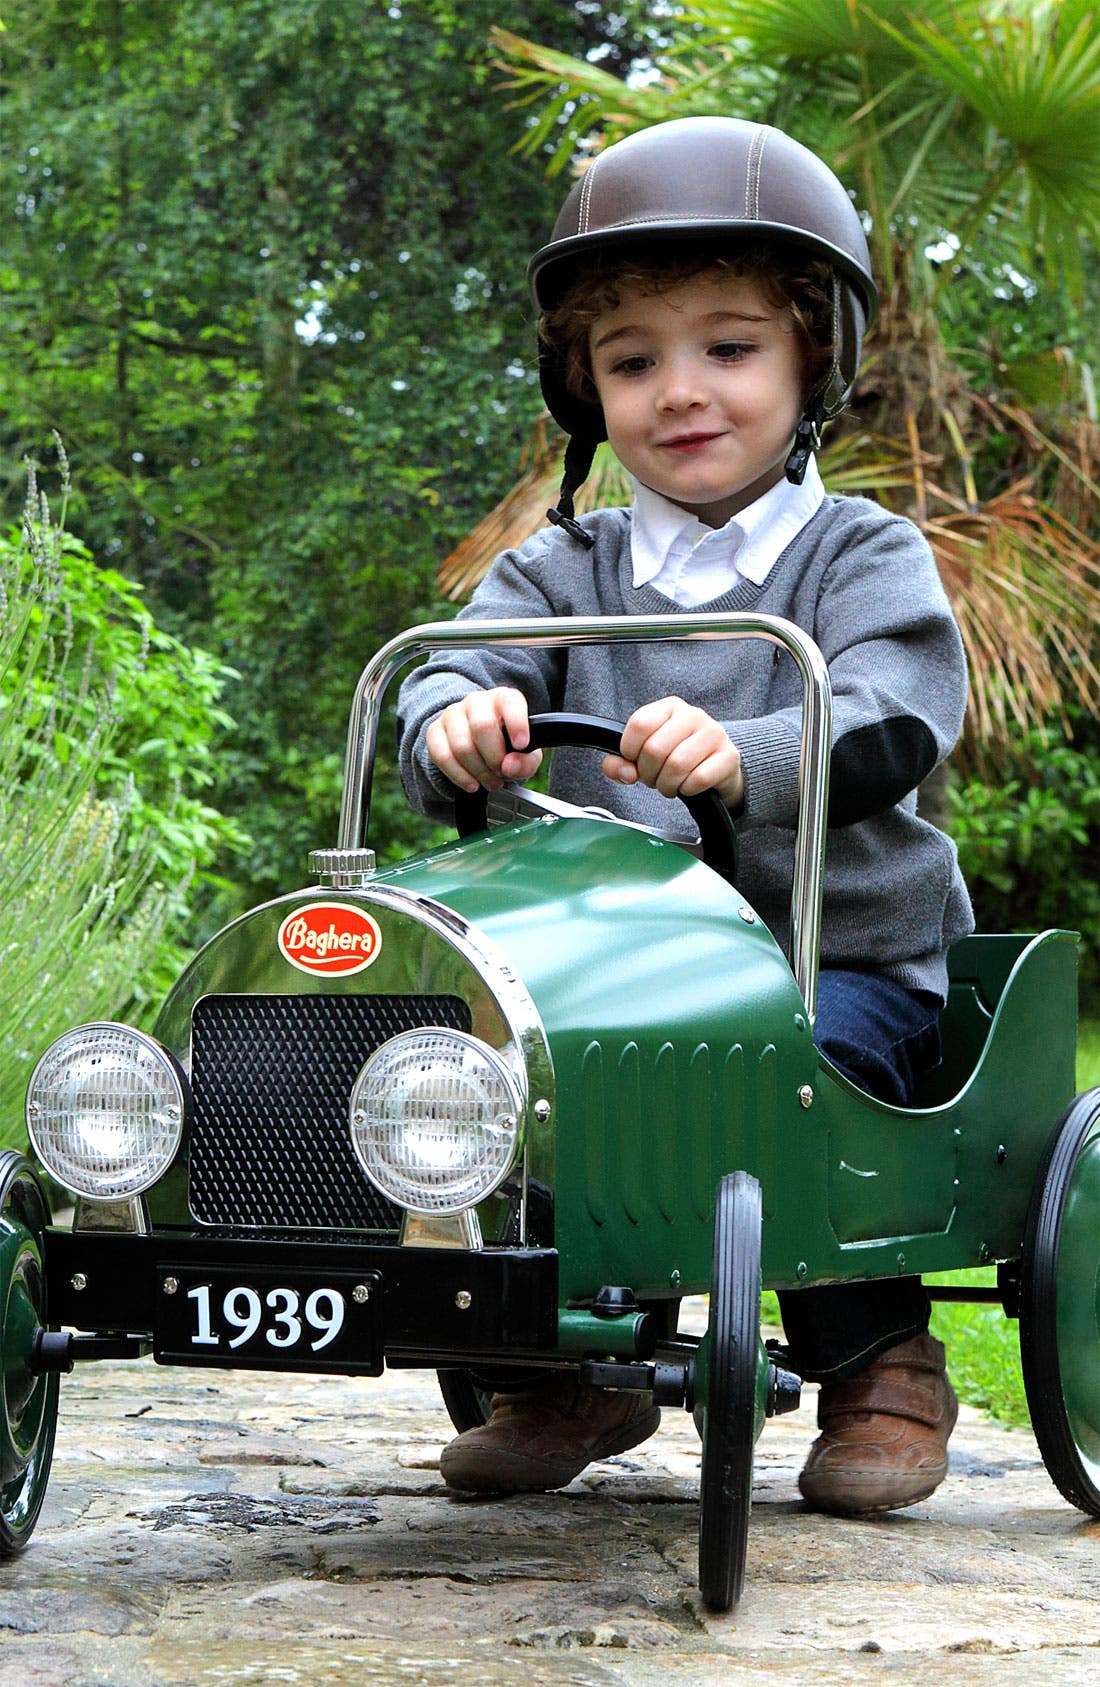 Alternate Image 2  - Baghera 'Classic' Pedal Car (Toddler)